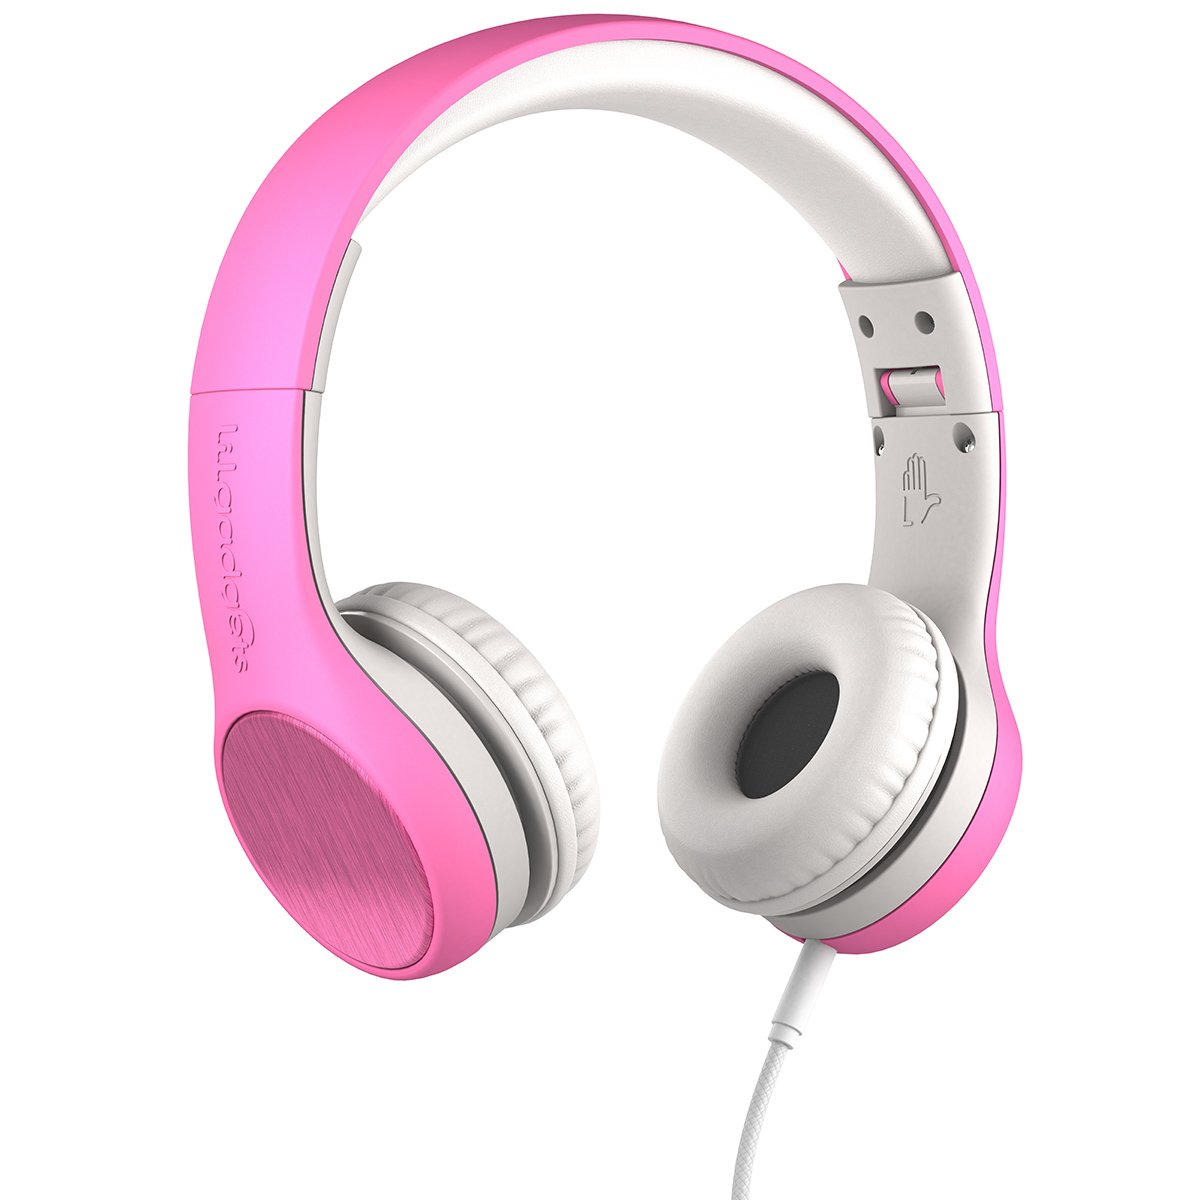 New! LilGadgets Connect+ Style Premium Volume Limited Wired Headphones with SharePort for Children/Kids (Pink) by LilGadgets